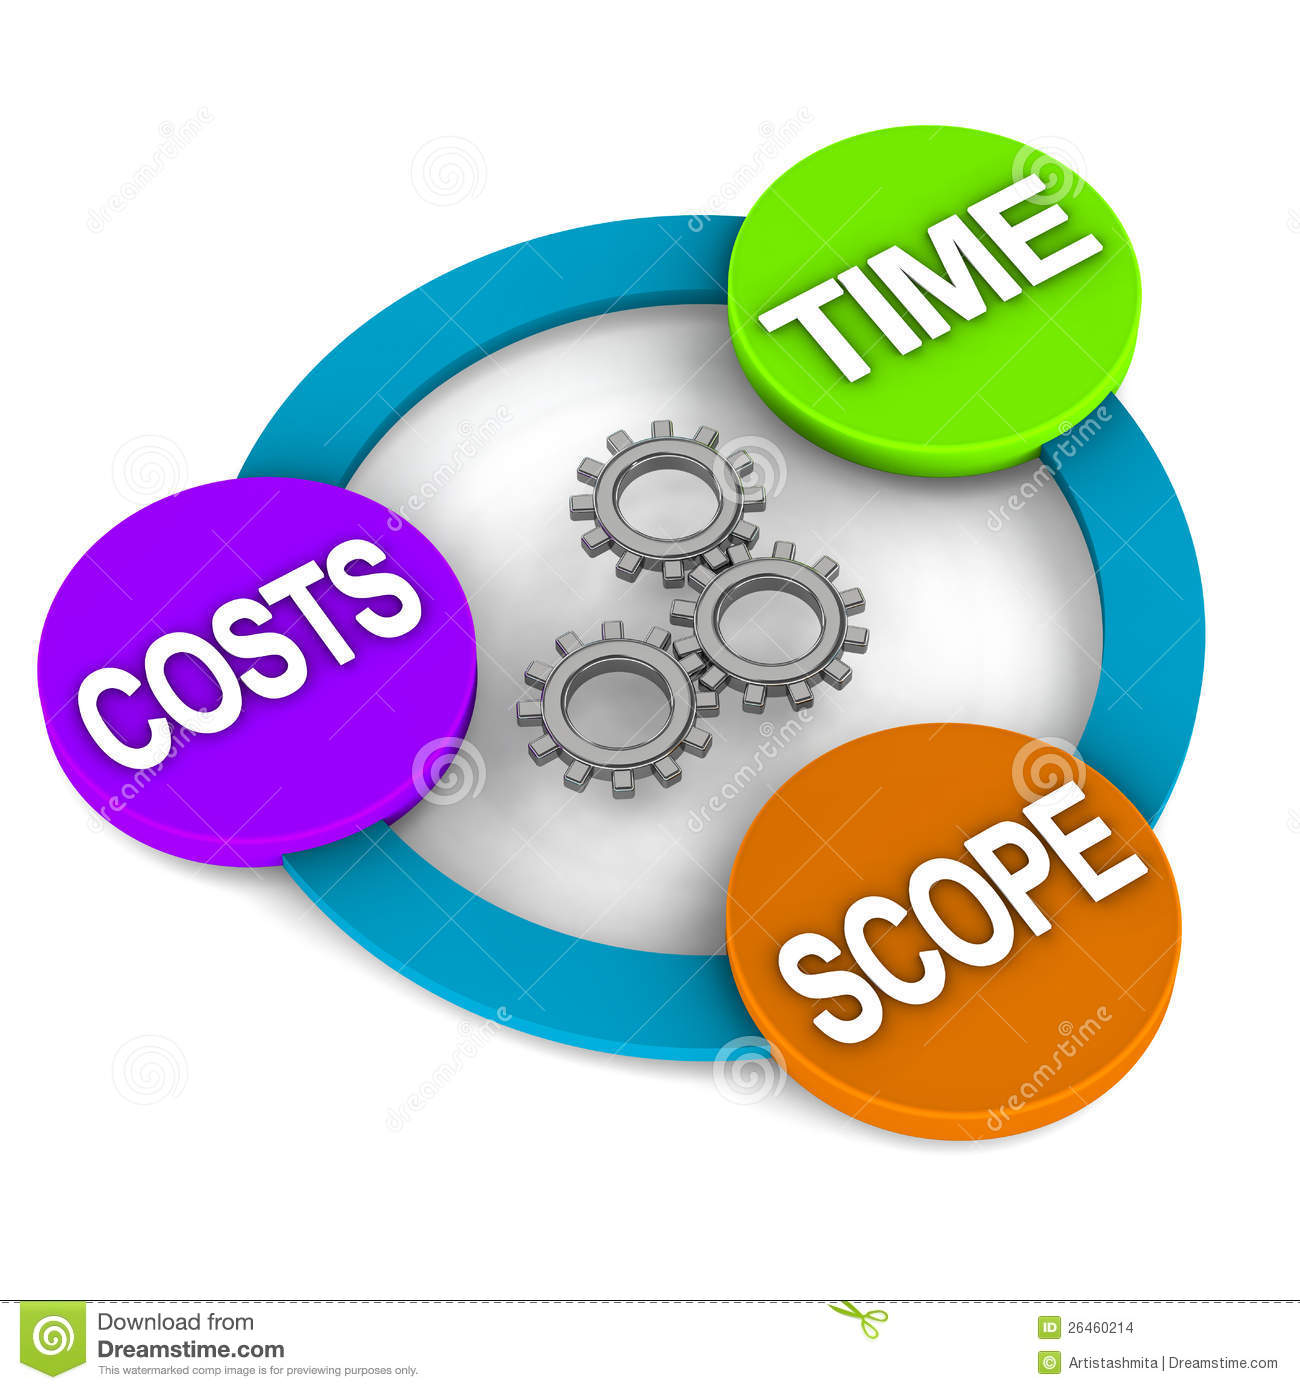 Elements Or Concept Of Project Management Time Scope And Costs